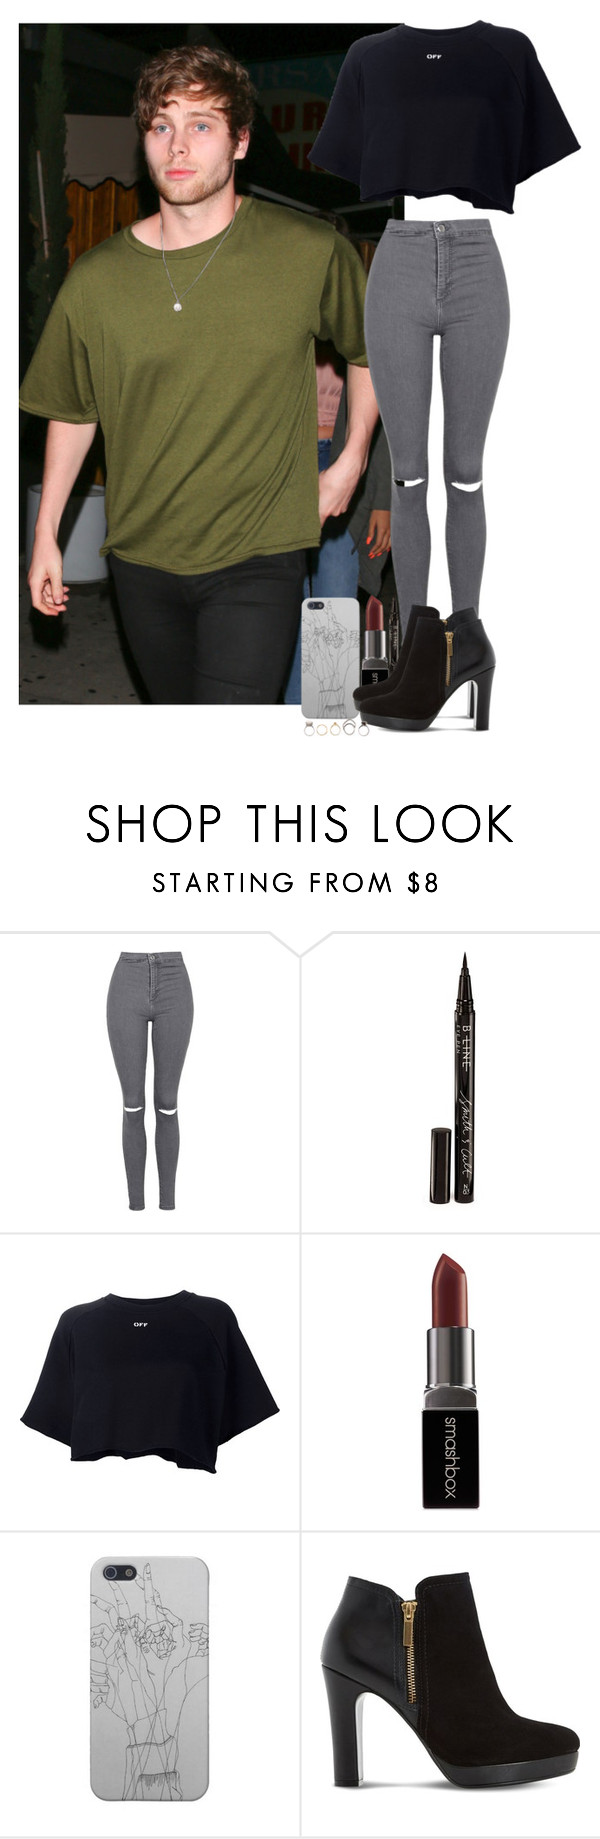 """Night out with Luke"" by ziampornm ❤ liked on Polyvore featuring Topshop, Smith & Cult, Off-White, Smashbox, Dune and Iosselliani"